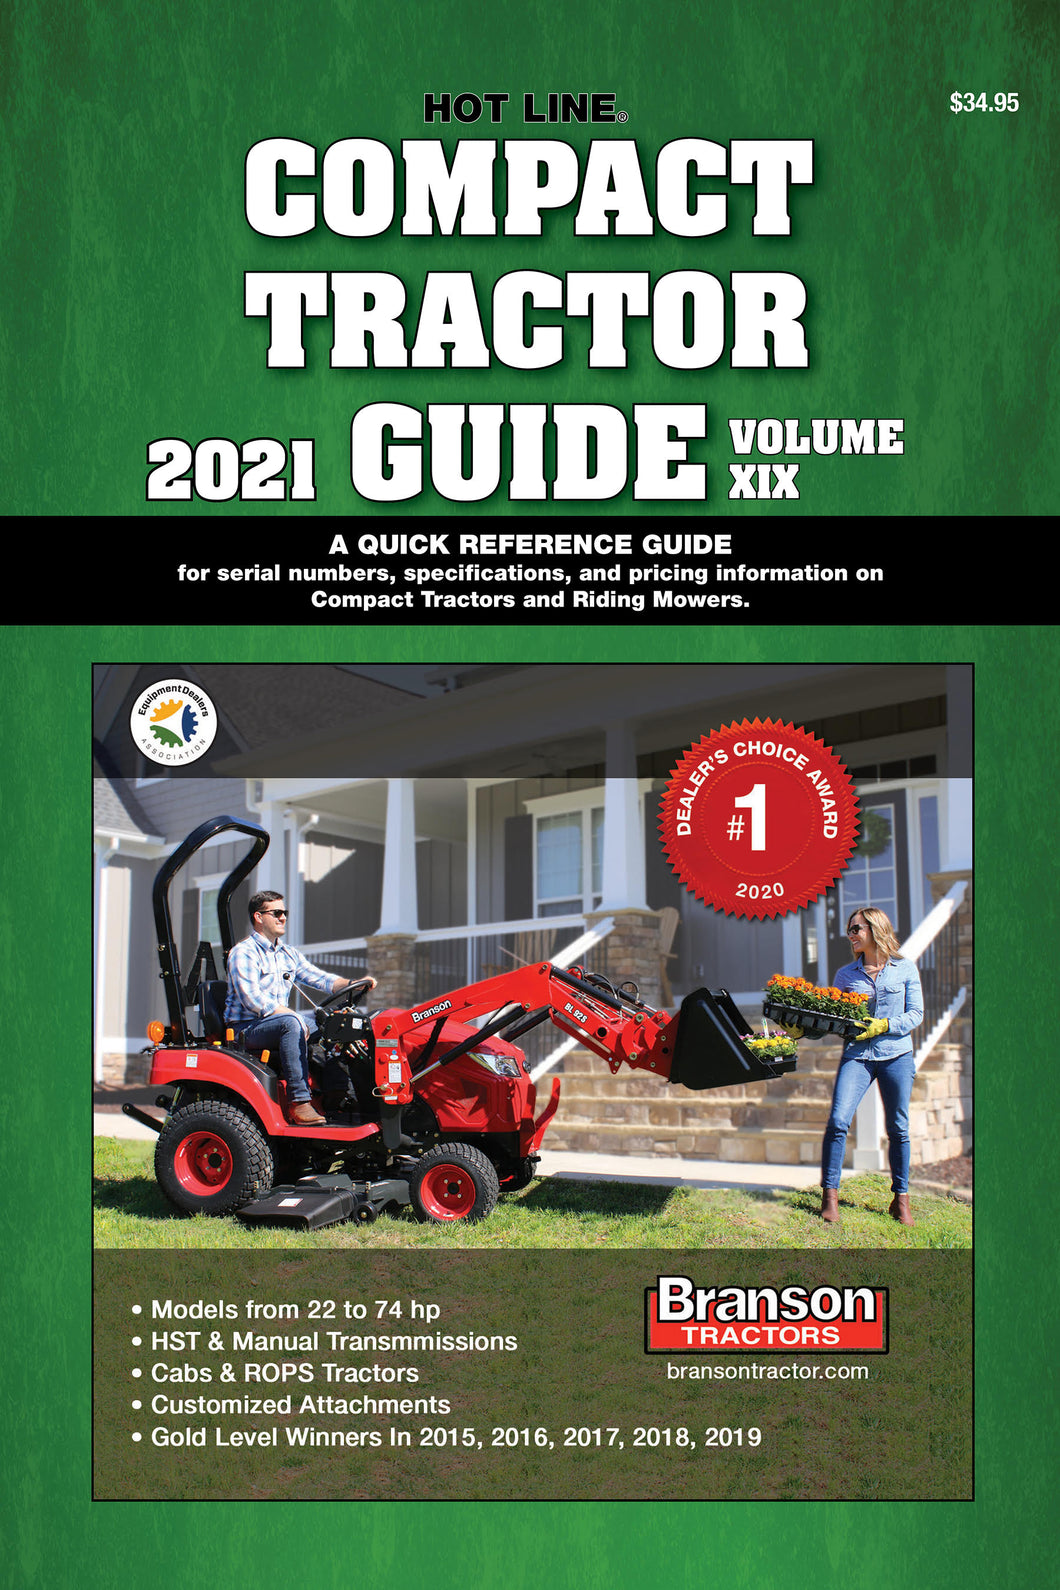 2021 Hot Line Compact Tractor Guide